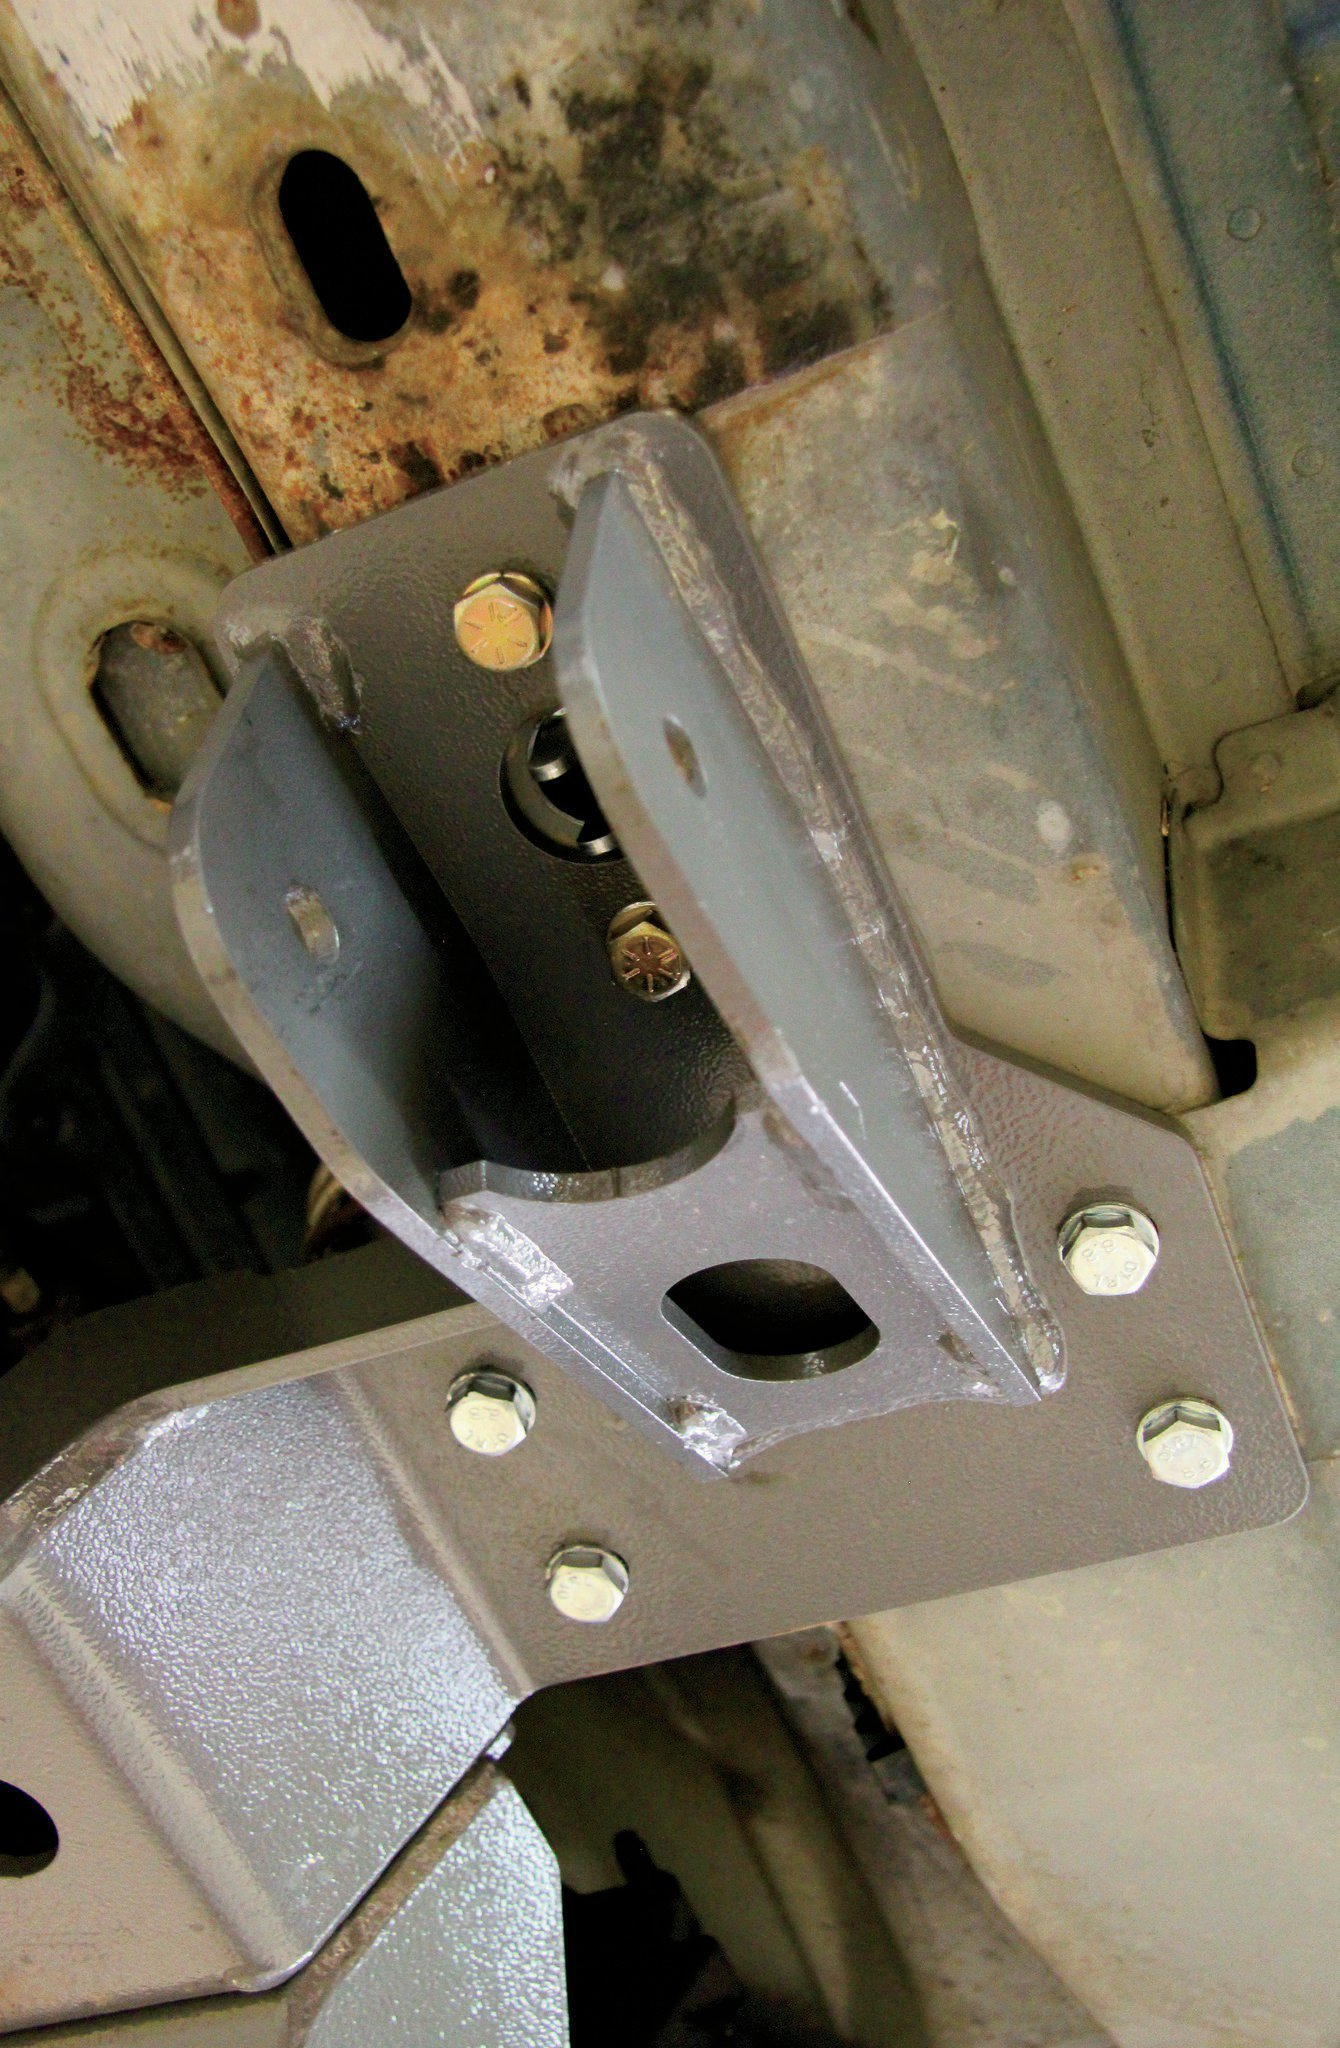 We started by installing the Rough Country long-arm suspension. The kit uses a 1⁄4-inch-thick replacement crossmember, which bolts directly to the four stock attachment points on each side of the Unitbody. To provide additional support, two extra bolts are secured above the control arm mounting location. Creating the opening for the flag nuts (nuts with tabs welded to them) will require either a 11⁄4-inch hole saw or a large unibit.